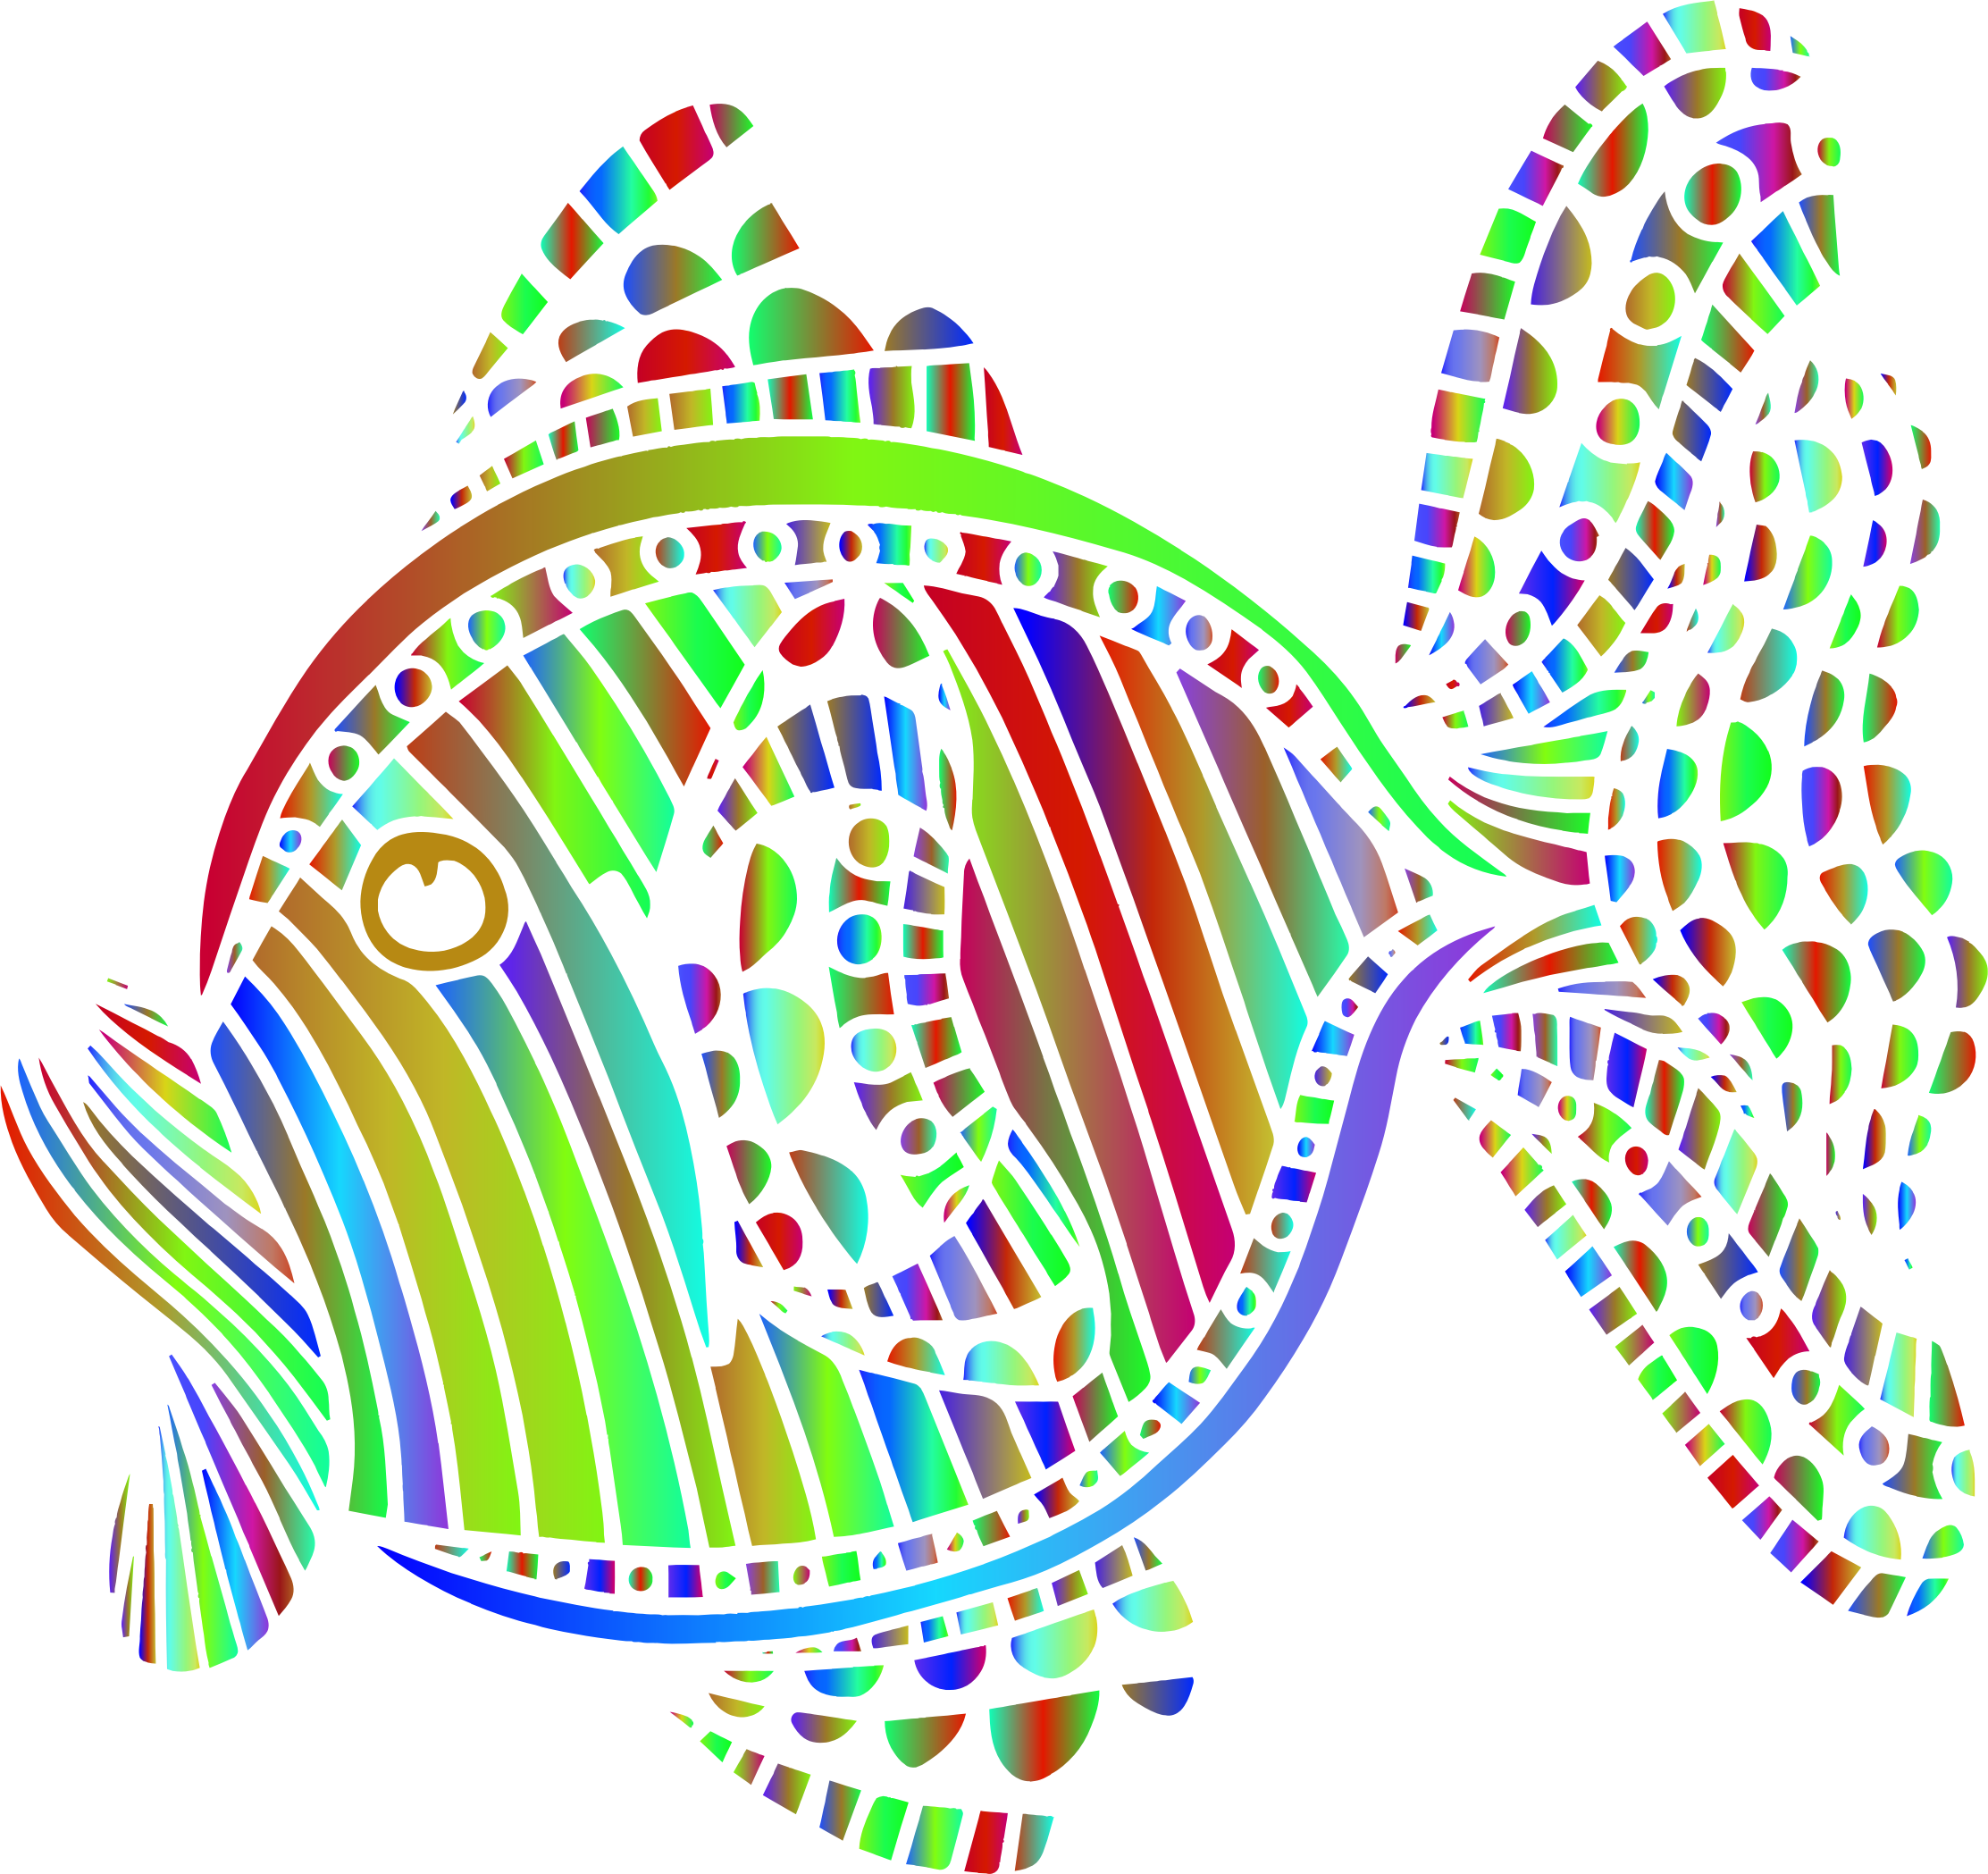 Abstract Colorful Fish 7 by GDJ